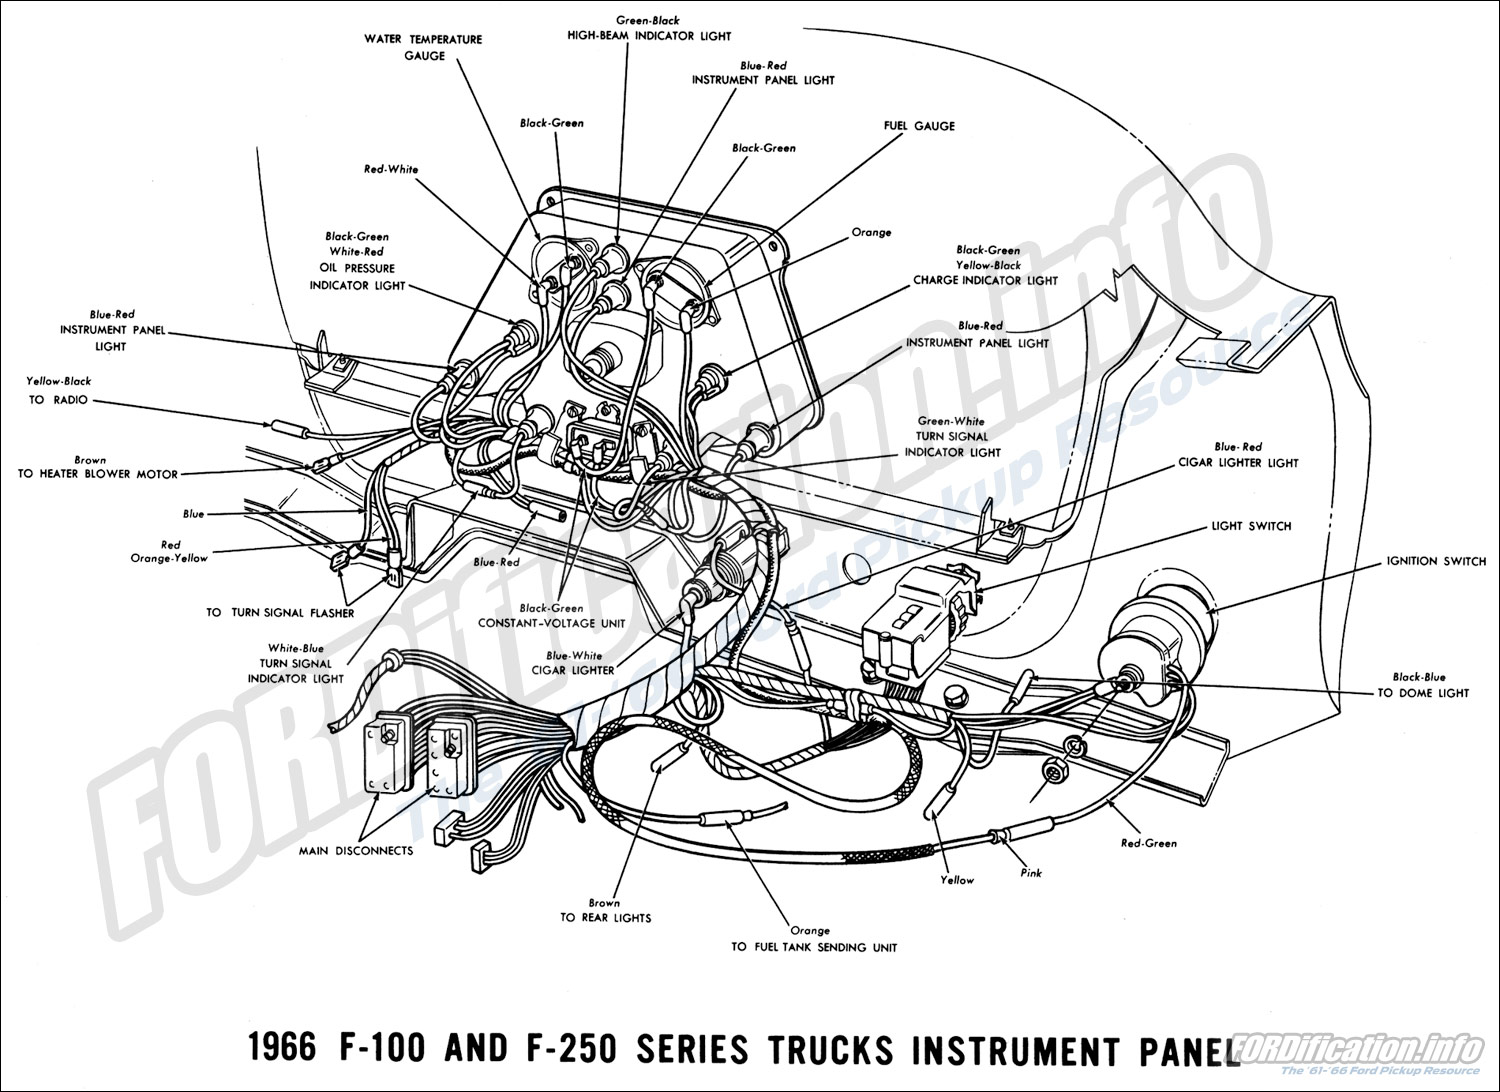 2000 ford f 250 wire diagram 1962 ford f 250 circuit diagram #3